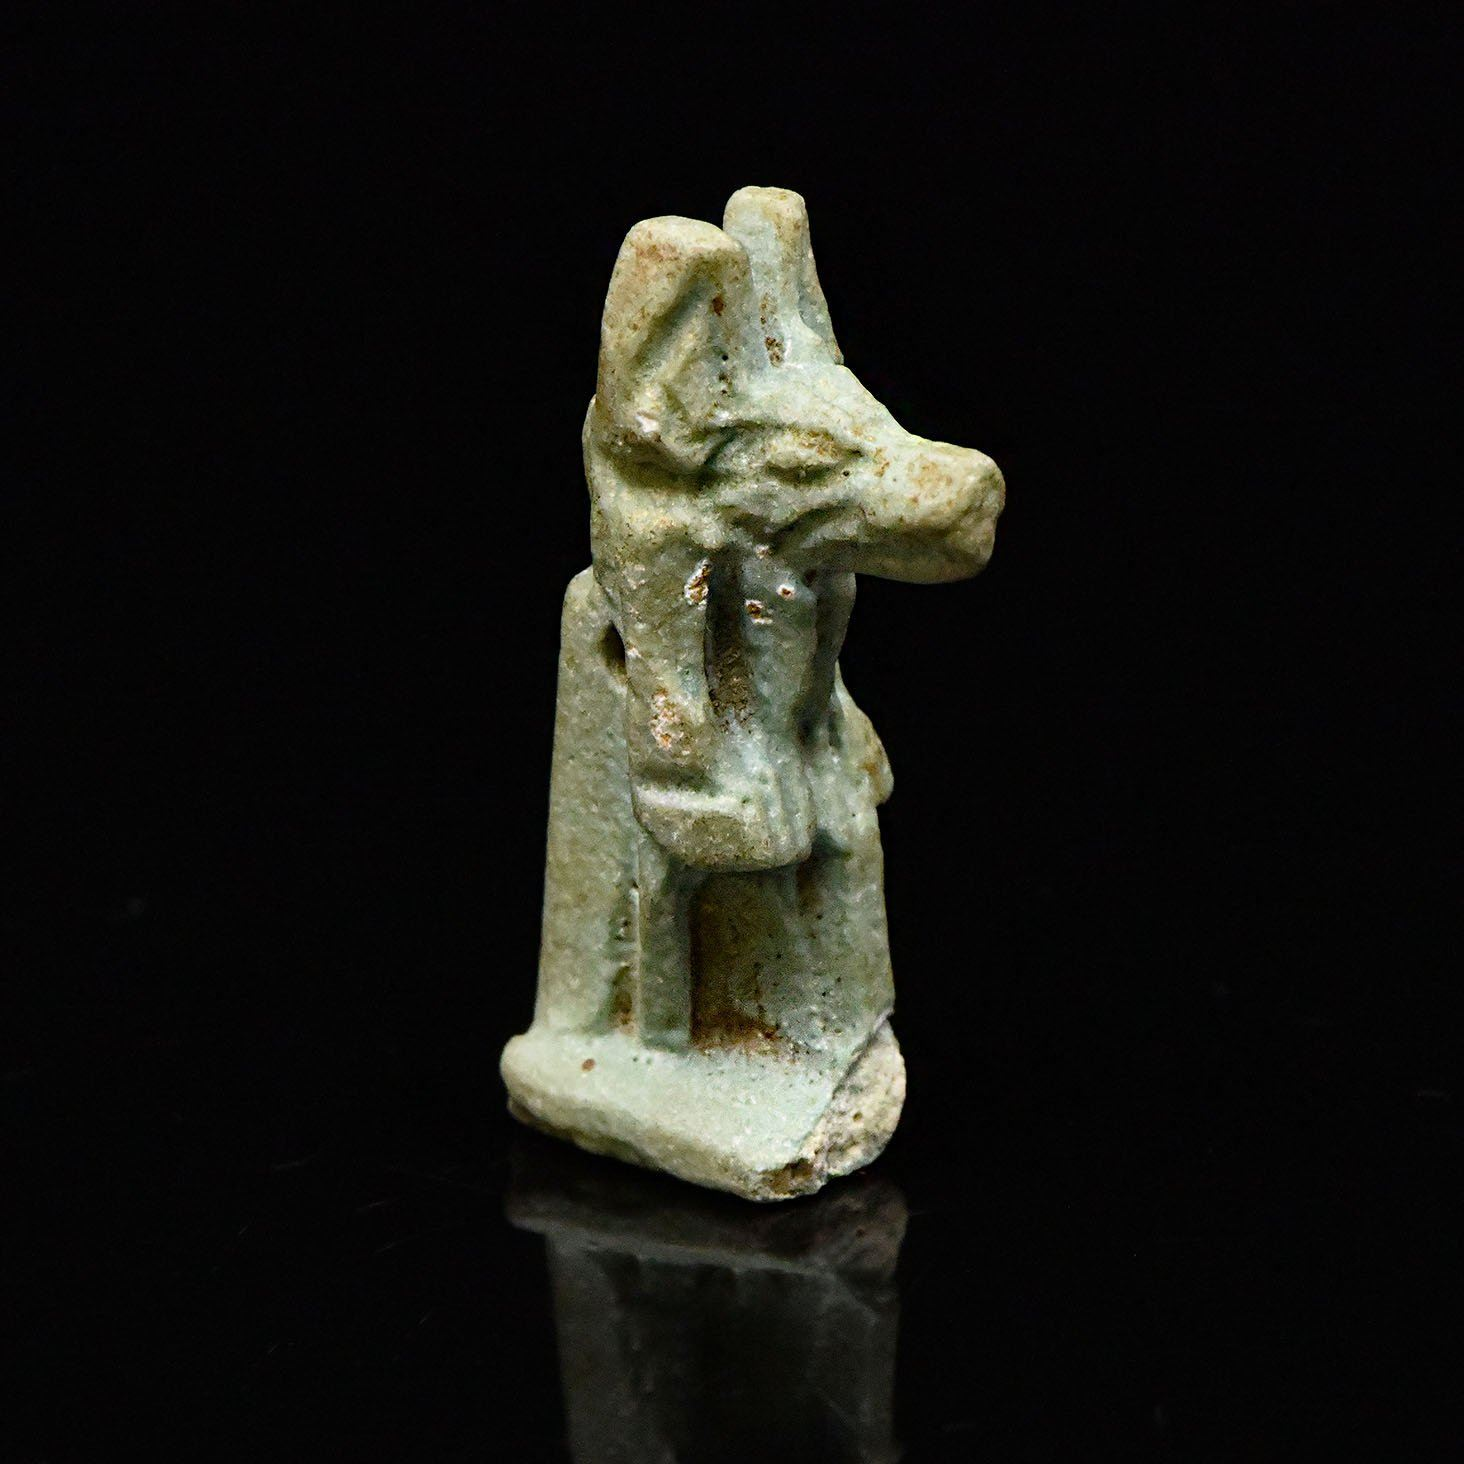 * An Egyptian Faience Amulet of Anubis, Late Period, ca. 664 - 332 BCE